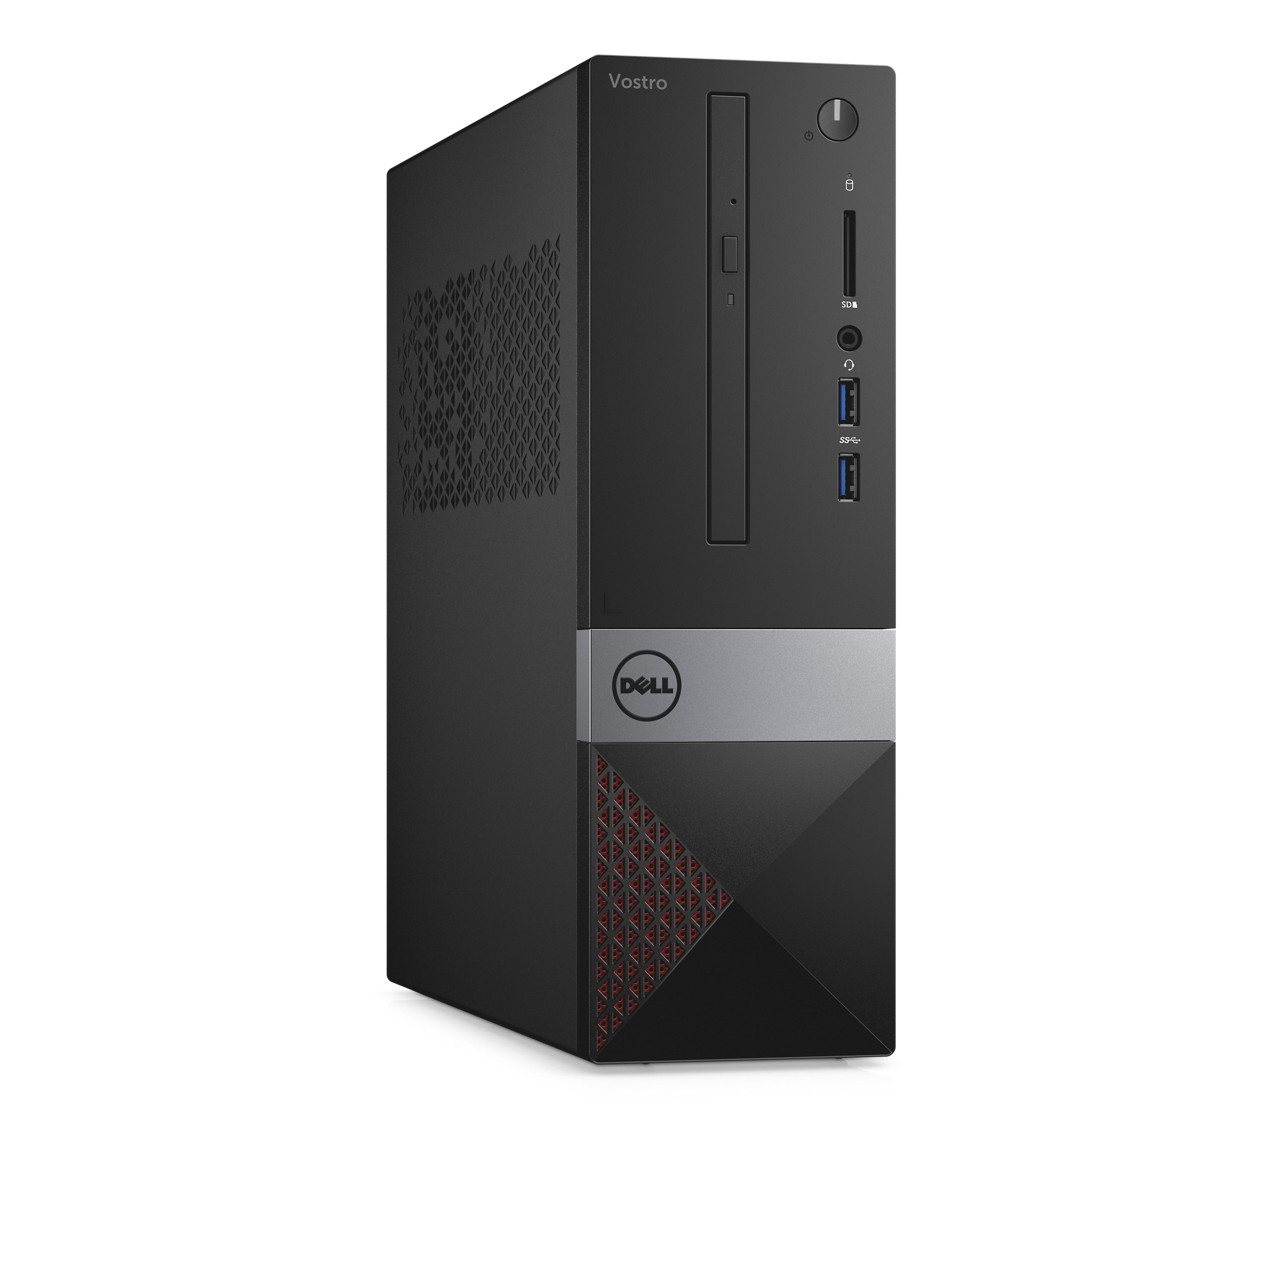 DELL Vostro 3268 SFF/i5-7400/8GB/256GB SSD/Intel HD/DVD-RW/Win10Pro